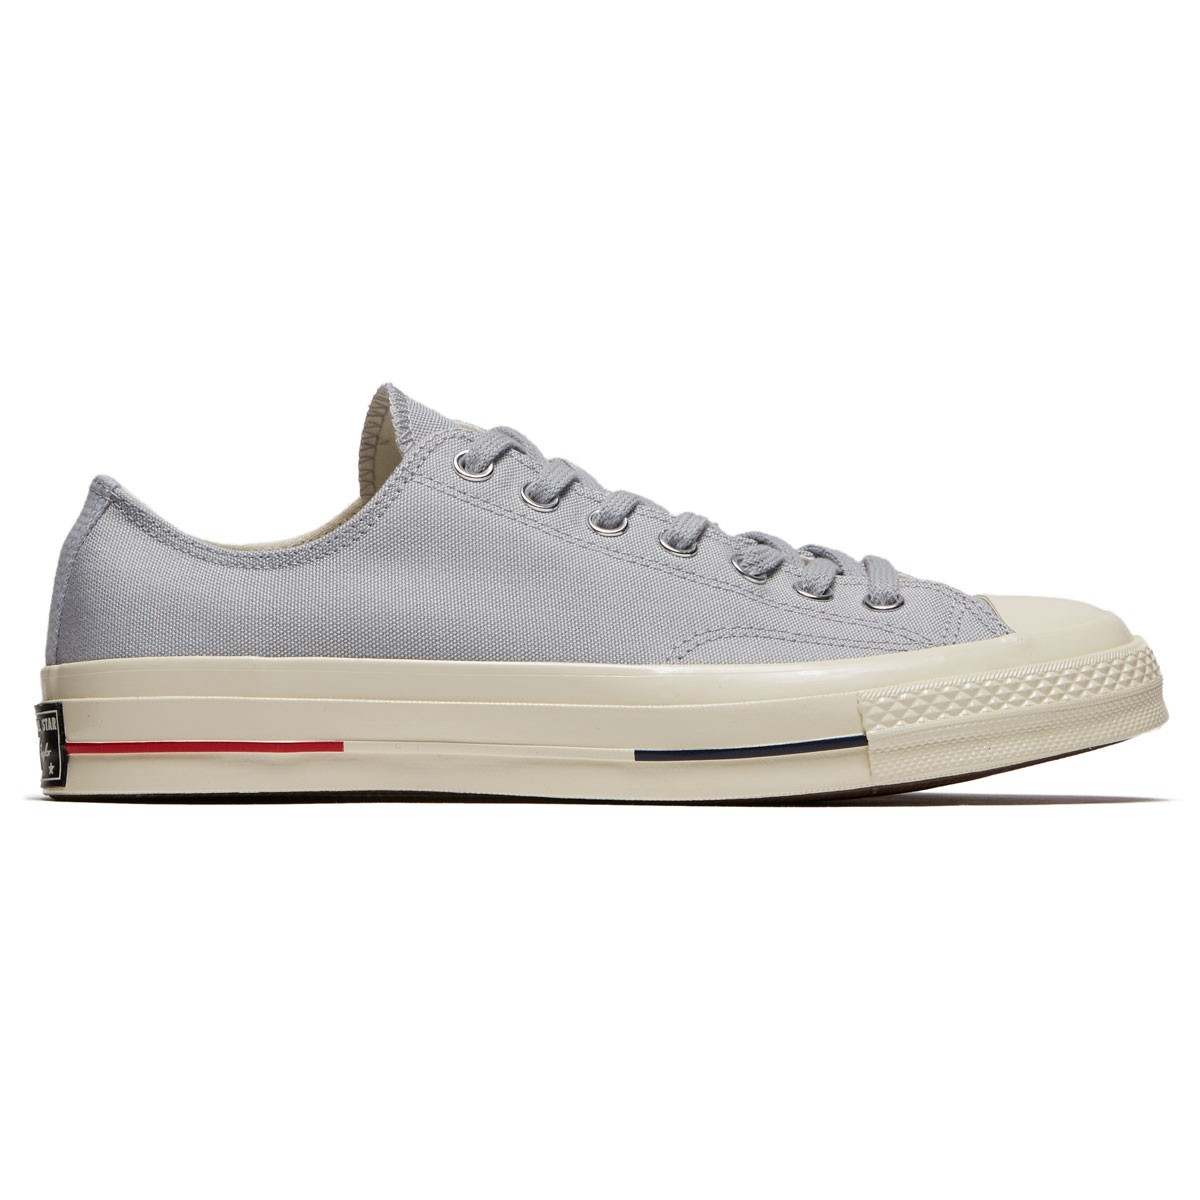 3467a935e89e Converse Chuck Taylor All Star 70 Ox Shoes - Wolf Grey Navy Gym Red